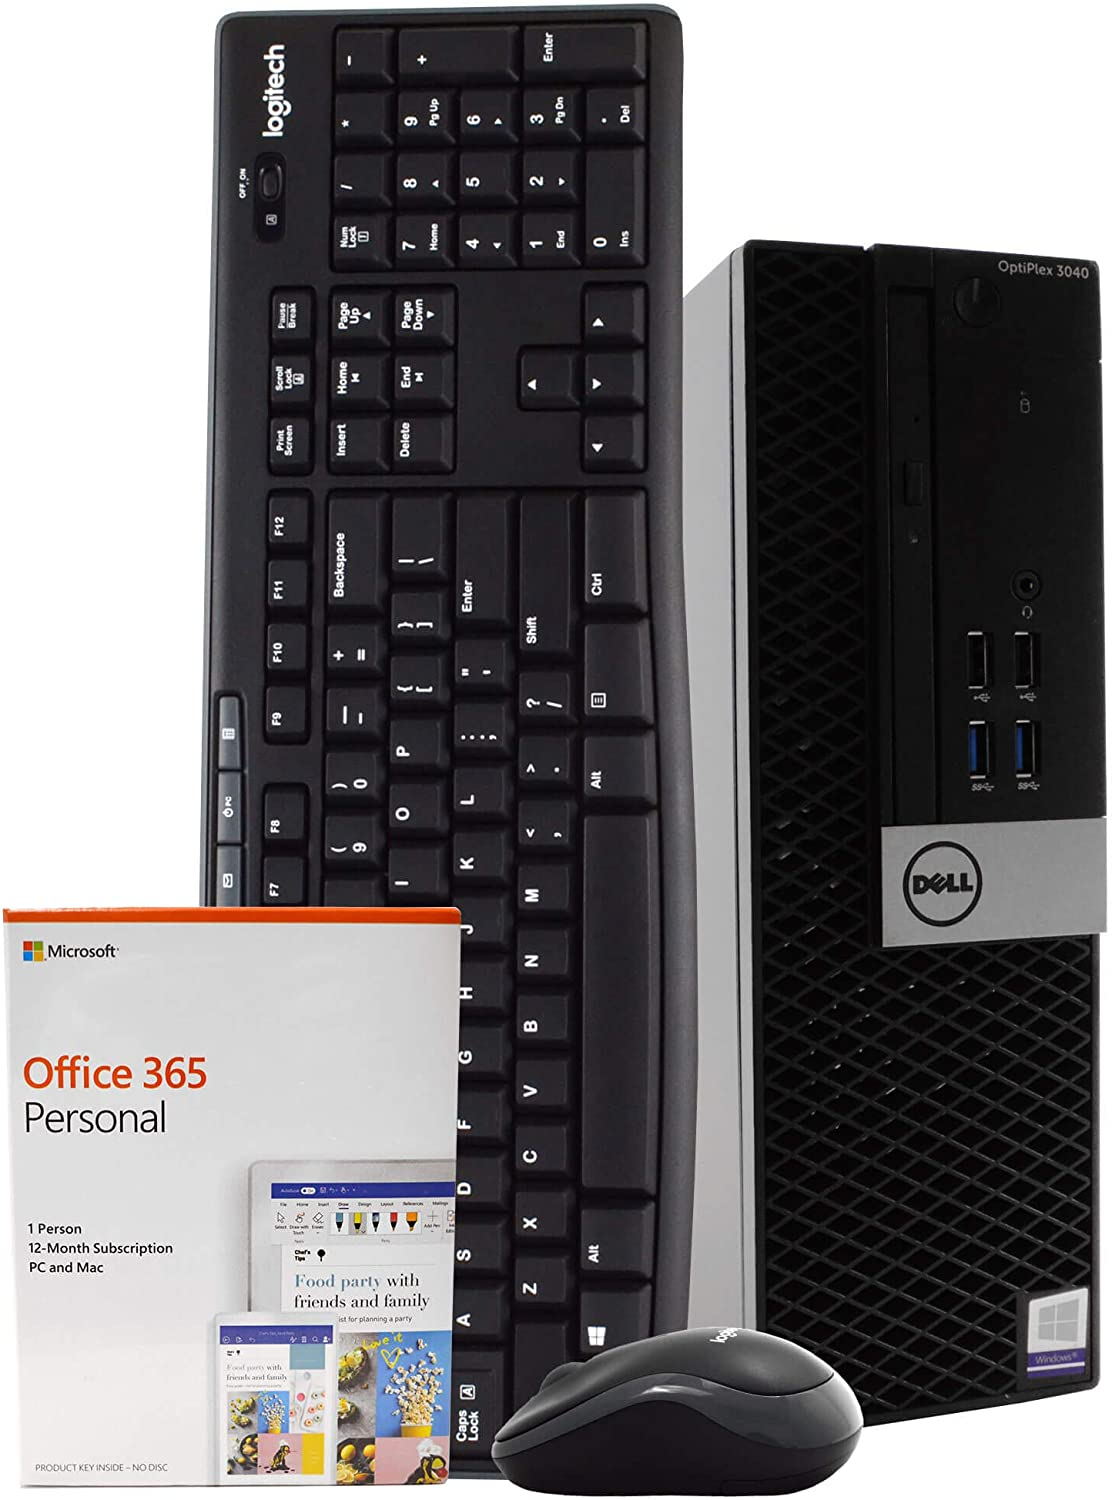 Dell OptiPlex 3040 PC Desktop Computer, Intel Quad Core i5-6500, 8GB RAM, 1TB HDD, Windows 10 Pro, Microsoft Office 365 Personal, New 16GB Flash Drive, Wireless Keyboard & Mouse, DVD, WiFi (Renewed)